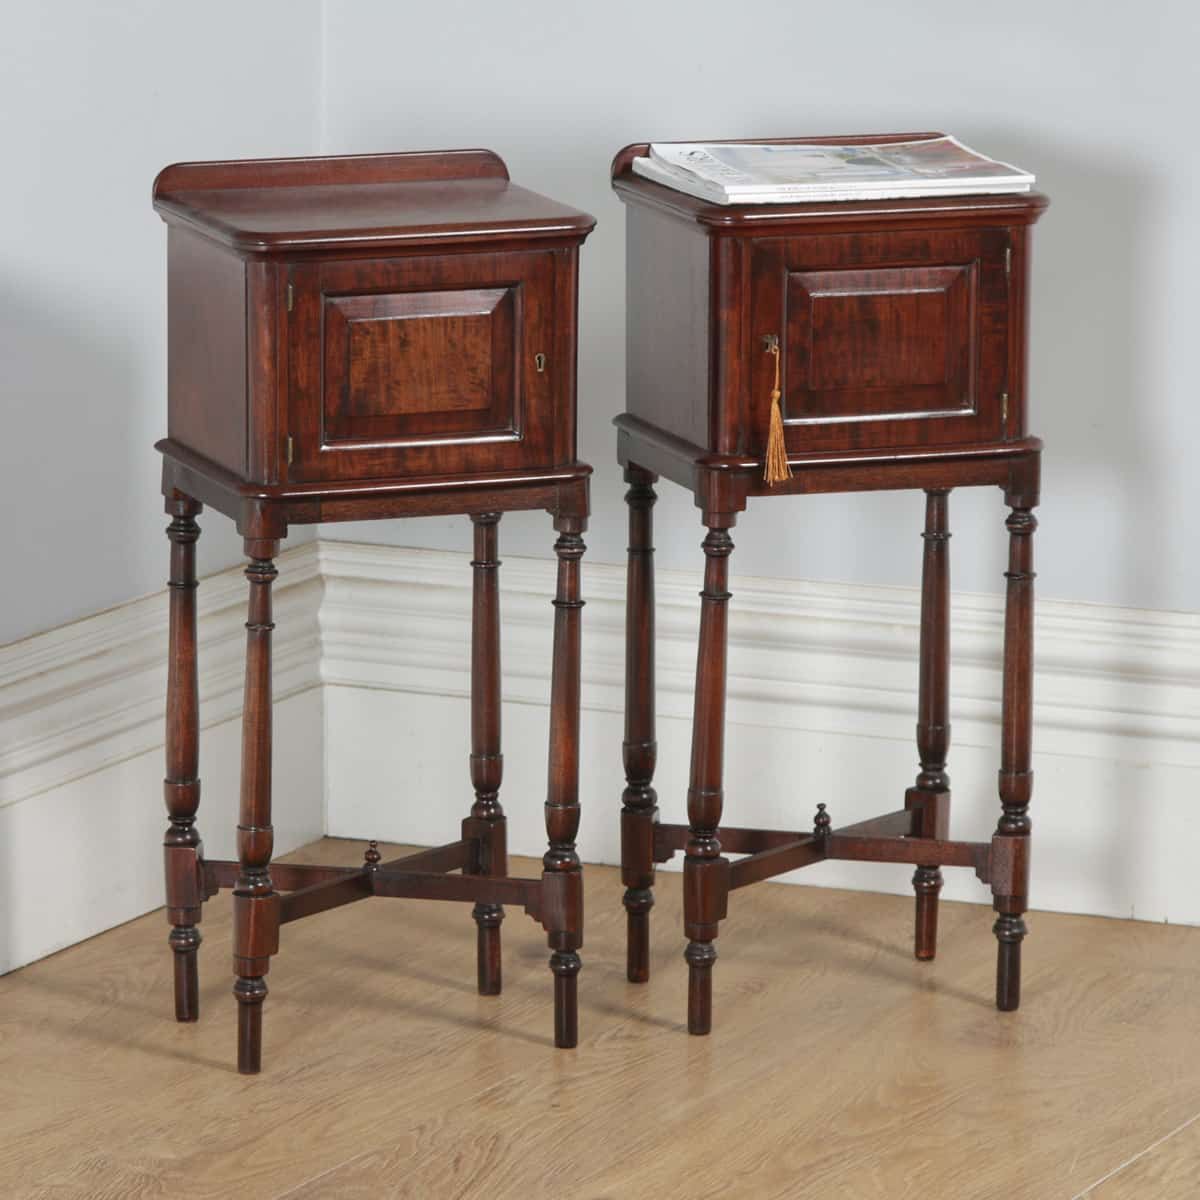 Picture of: Antique Pair Of English Victorian Mahogany Bedside Cabinet Night Stands Circa 1880 Yola Gray Antiques